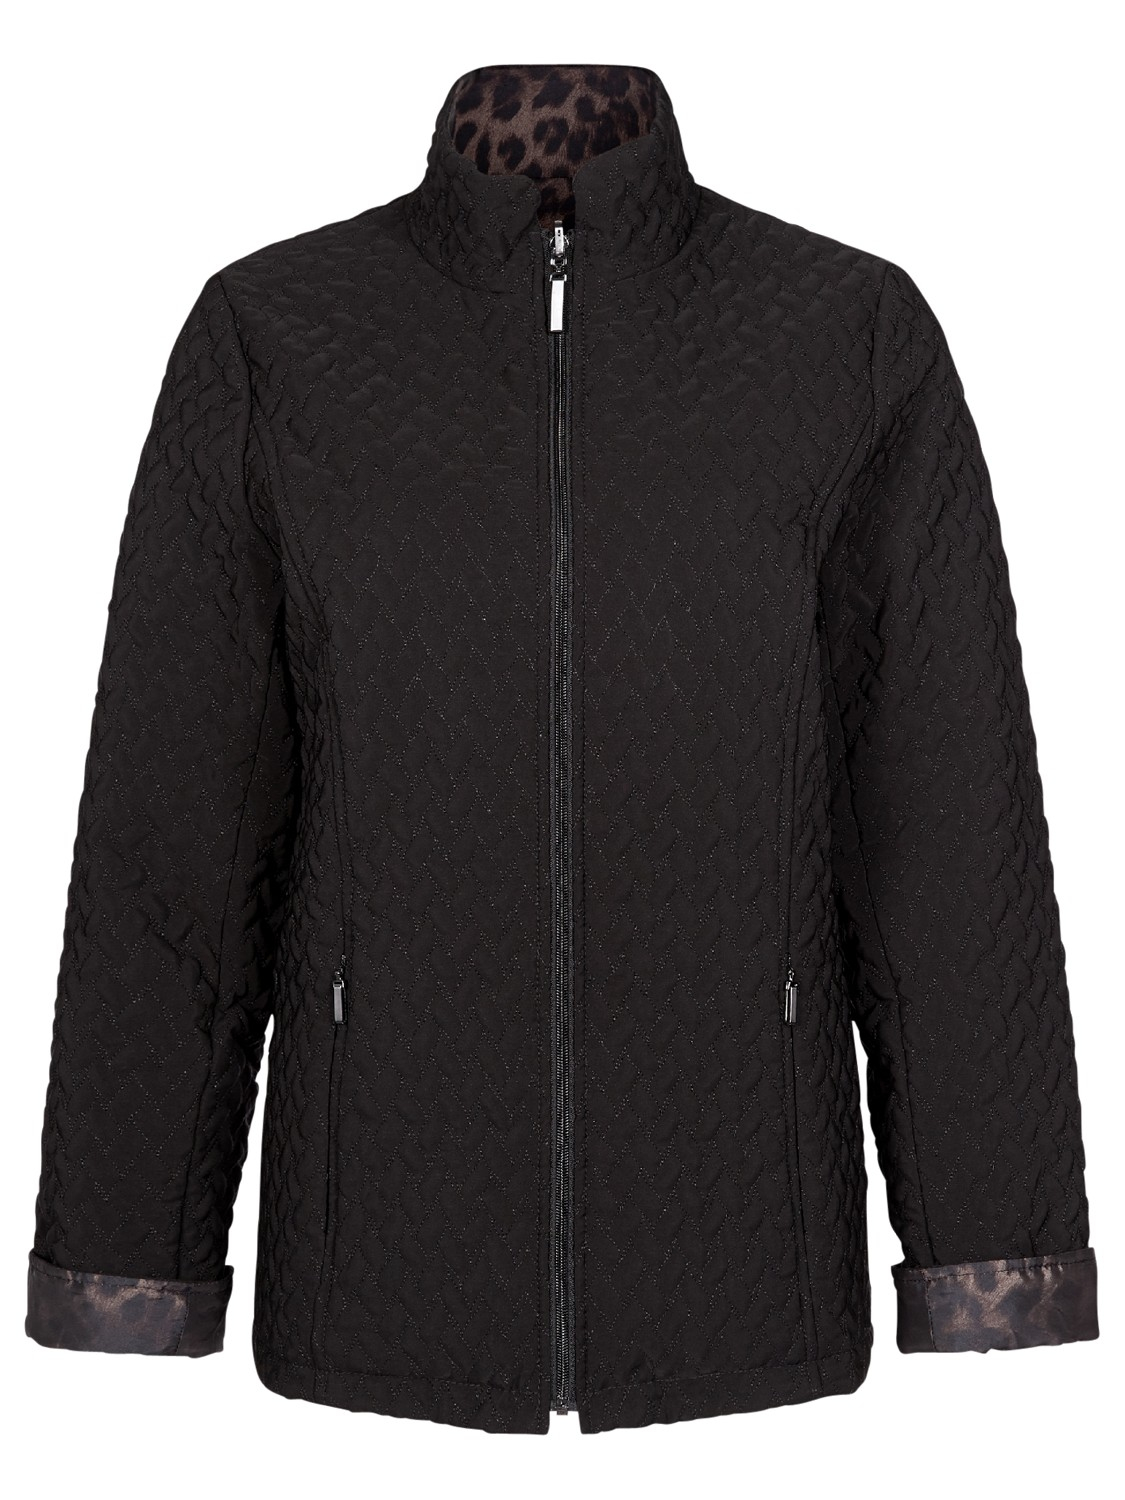 Jacques Vert Reversible Quilted Jacket In Black Lyst